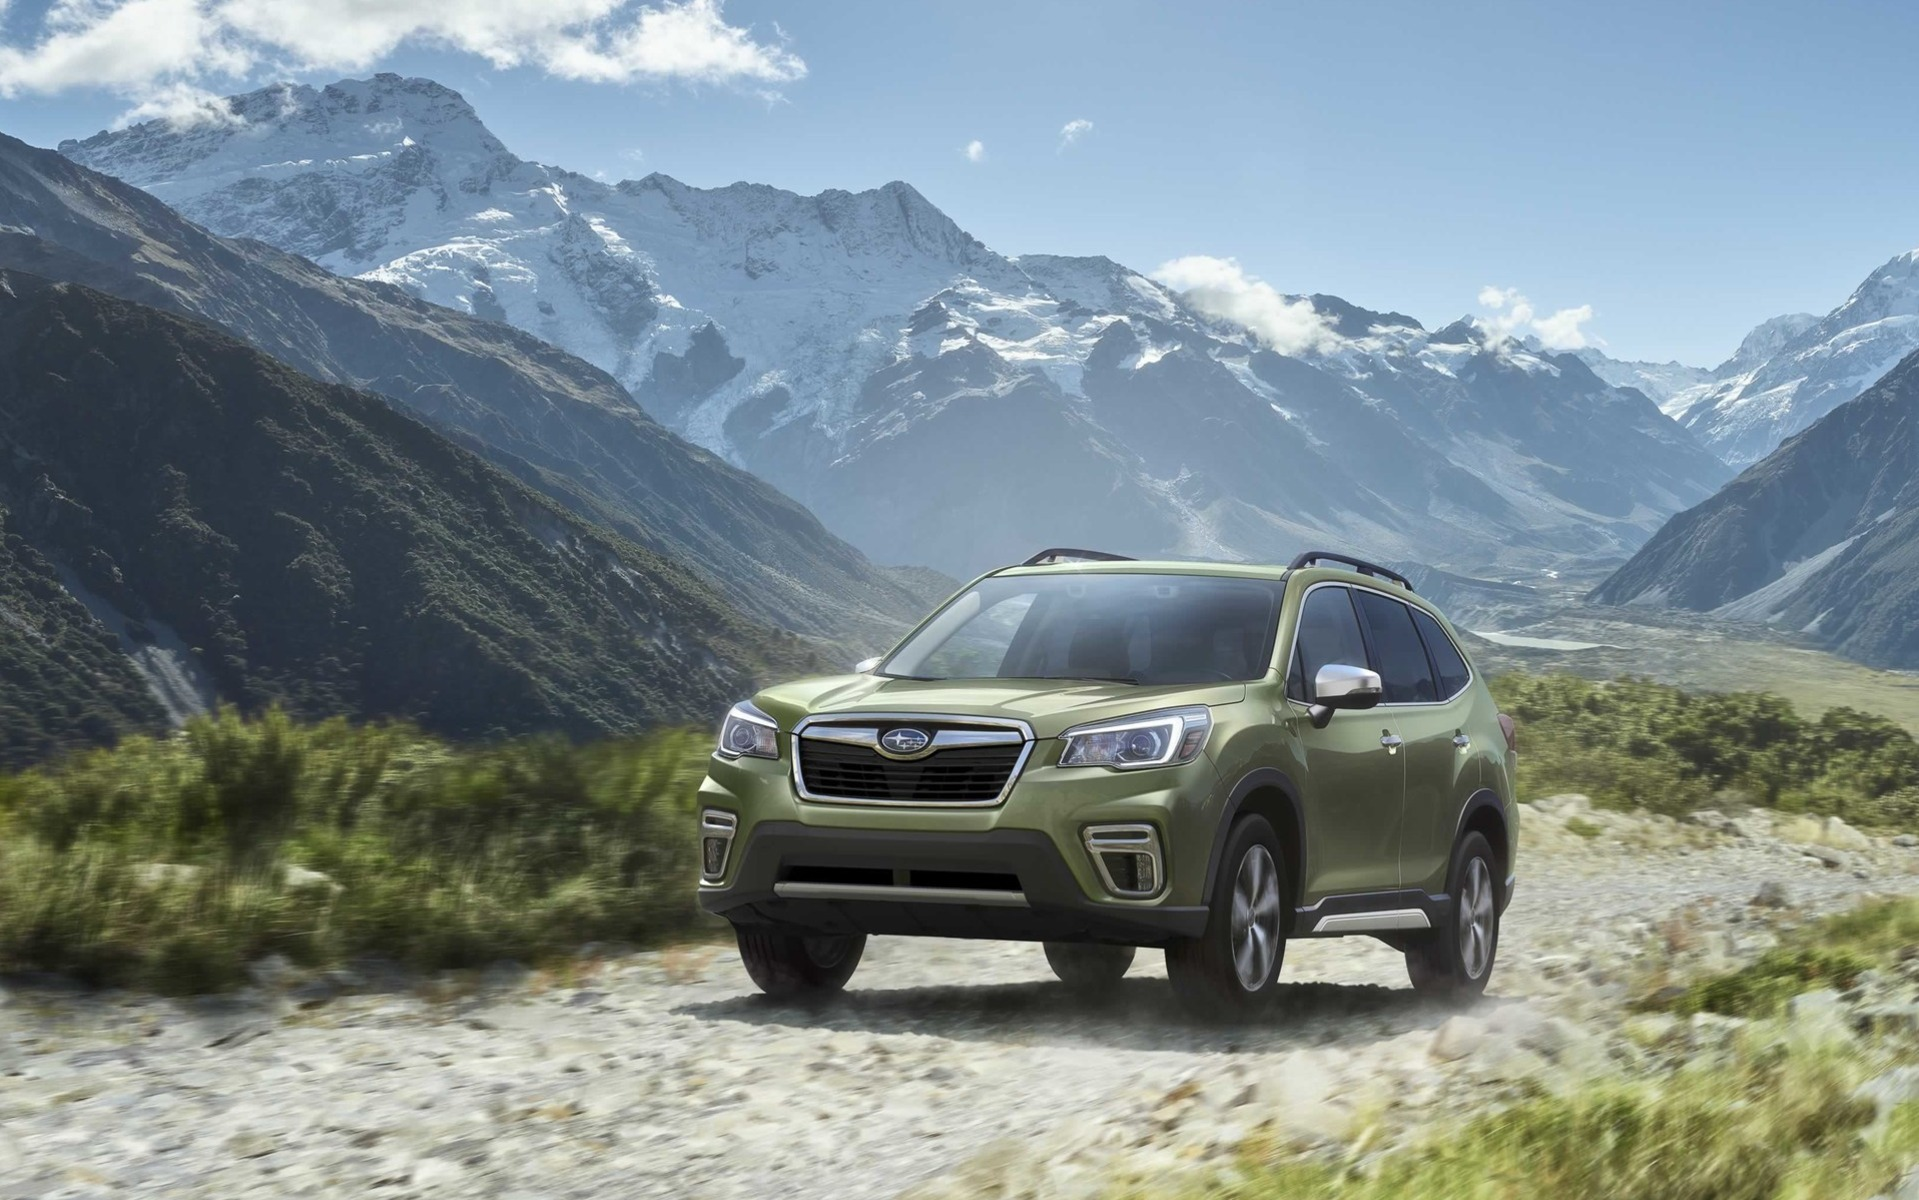 2020 Subaru Forester Gains Safety Tech, Convenience Features